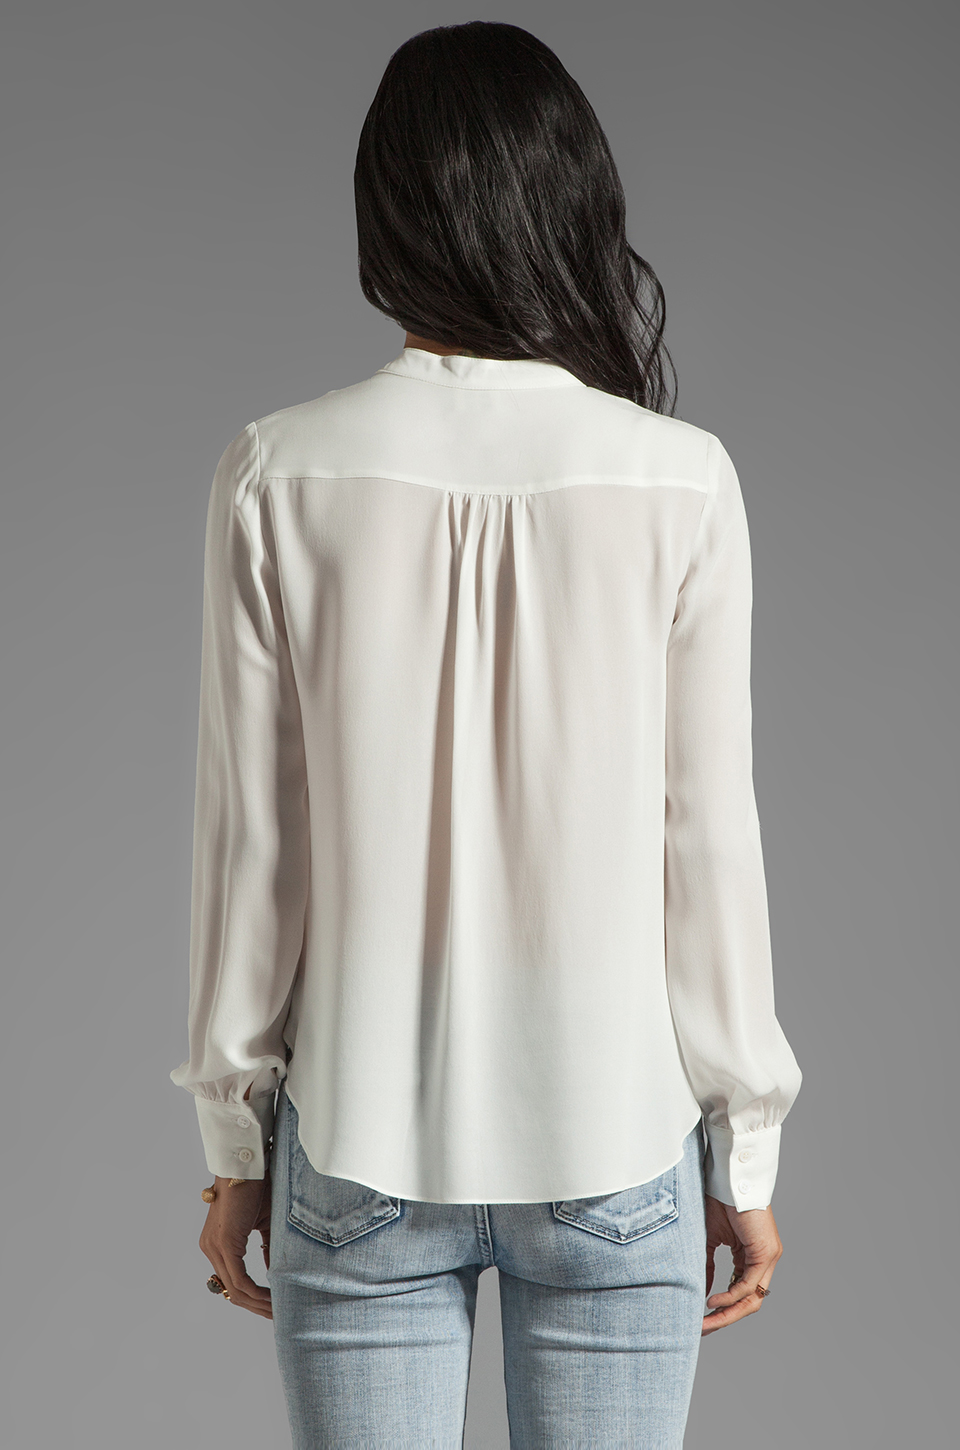 Haute Hippie Lace Detailed Blouse in Swan